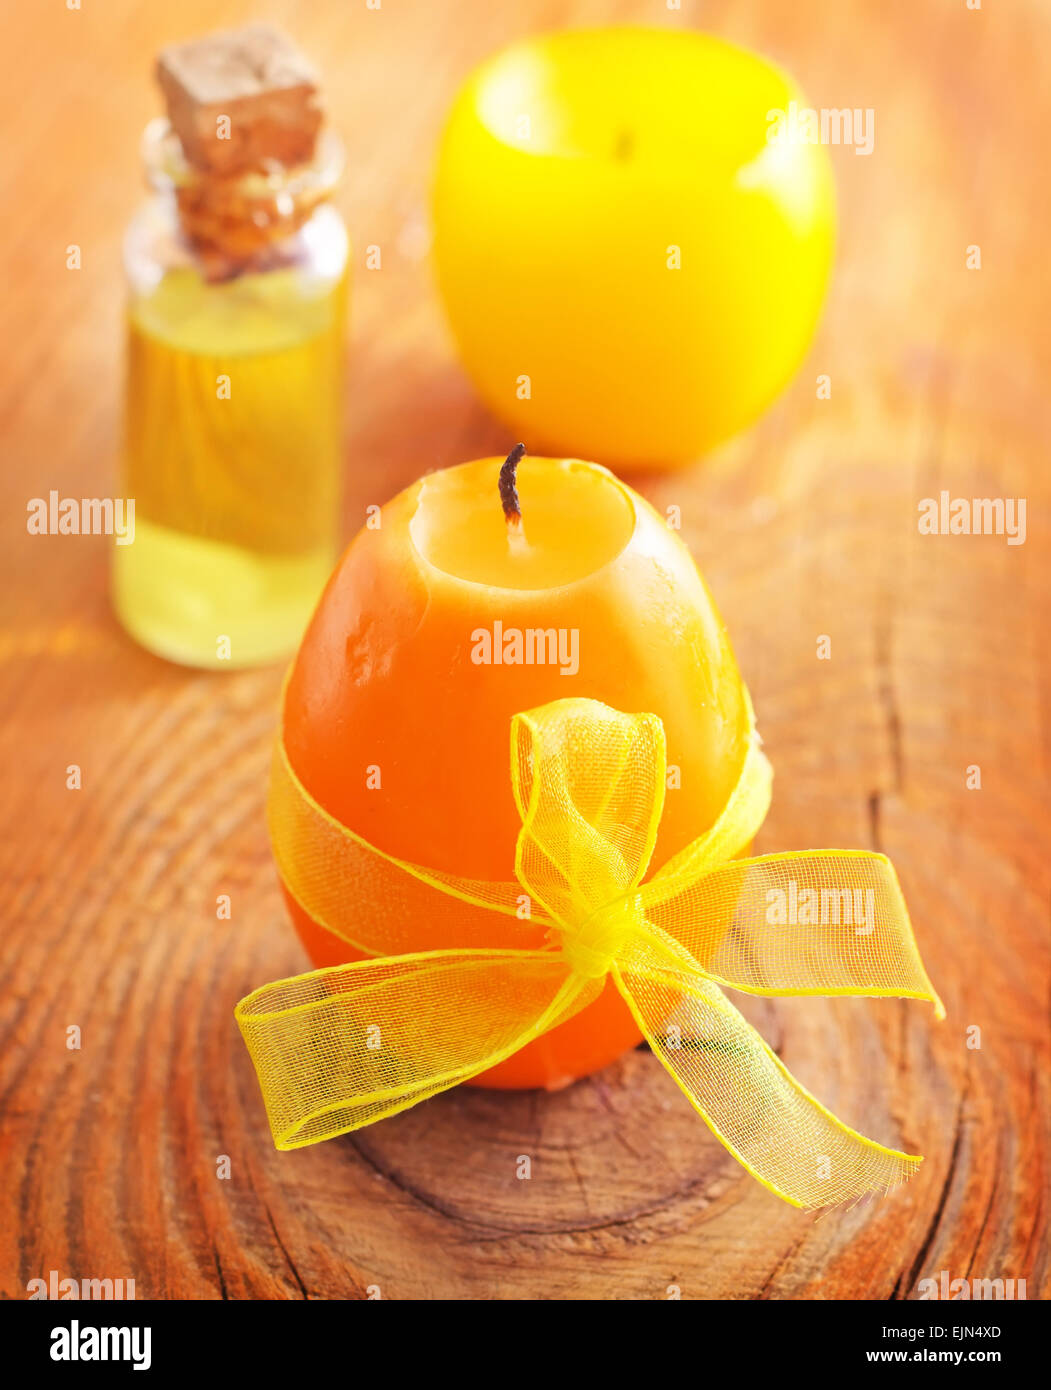 Aroma oil in glass bottl and candle on the wooden board - Stock Image